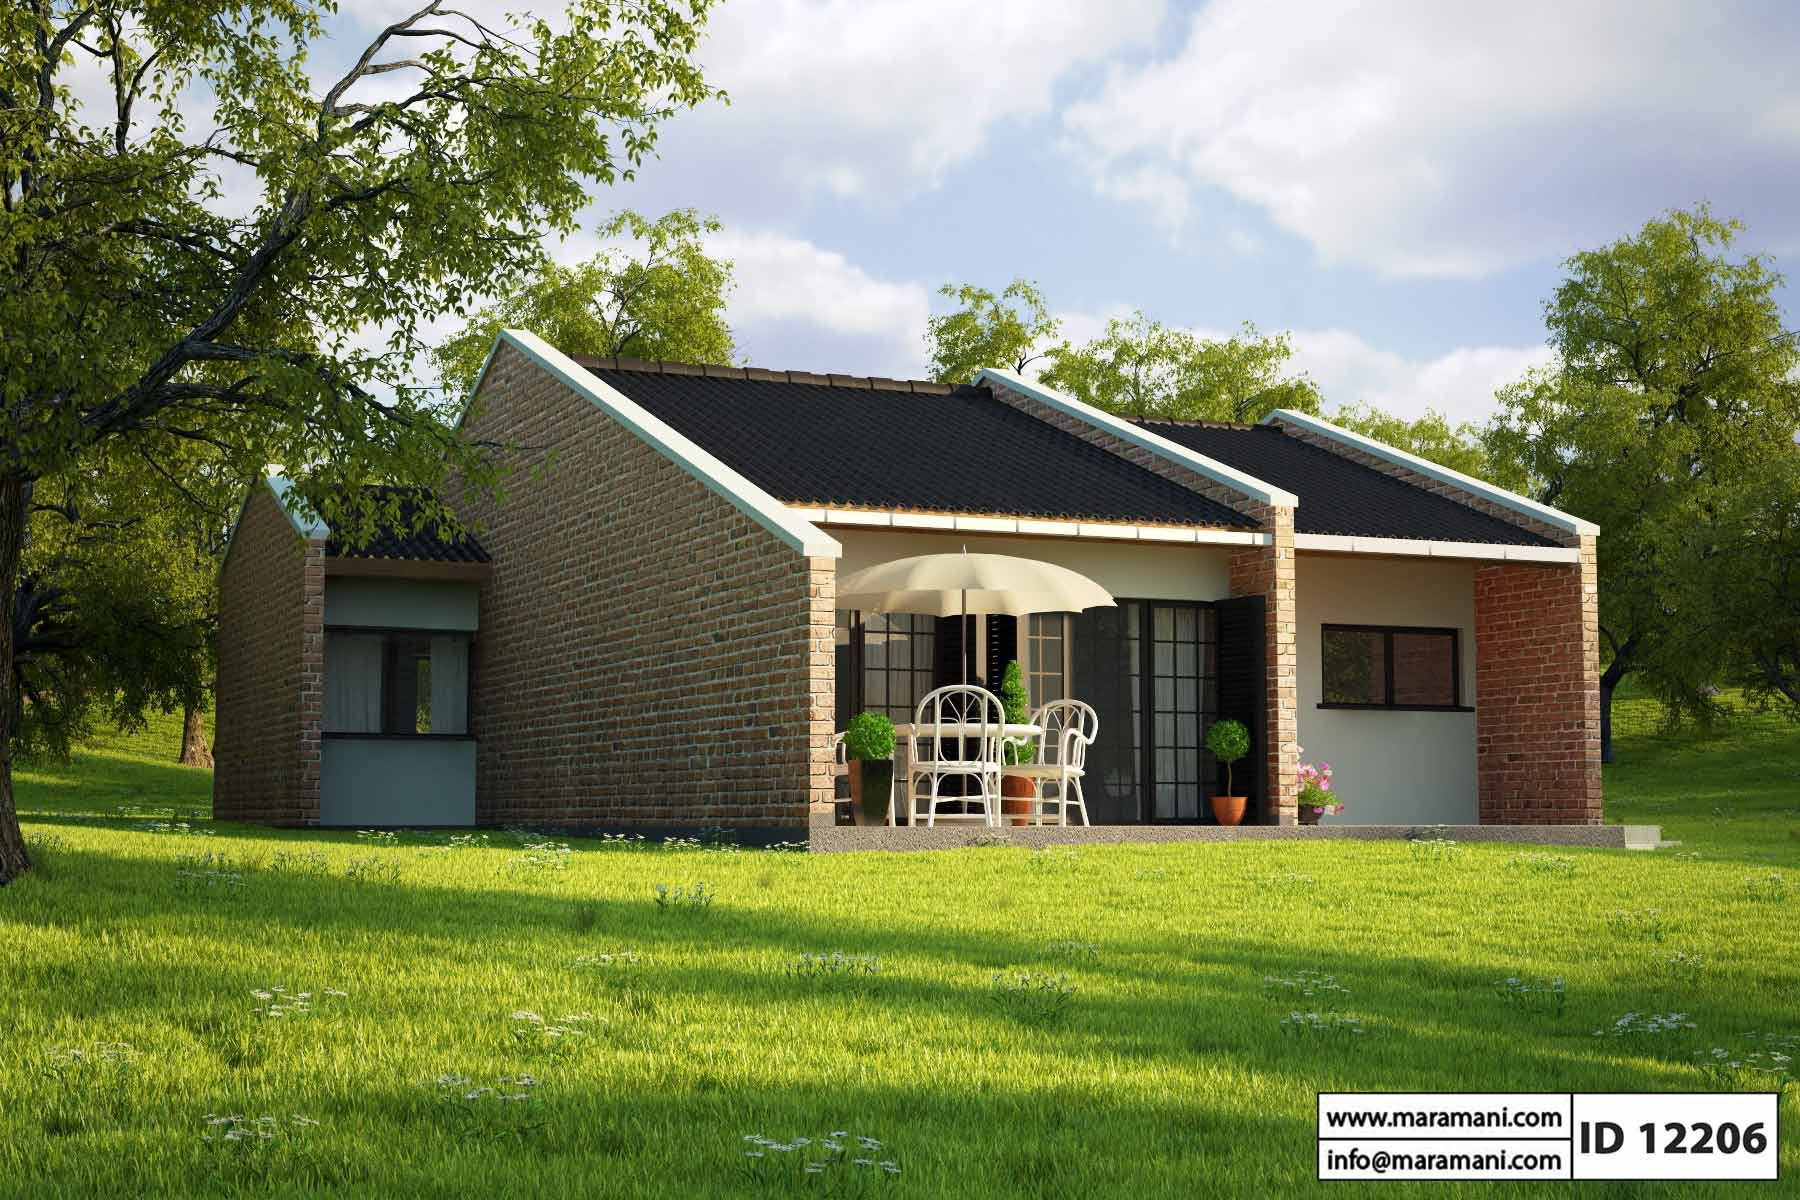 small brick house design id 12206 house plans by maramani rh maramani com small brick house plans photos small brick house plans photos